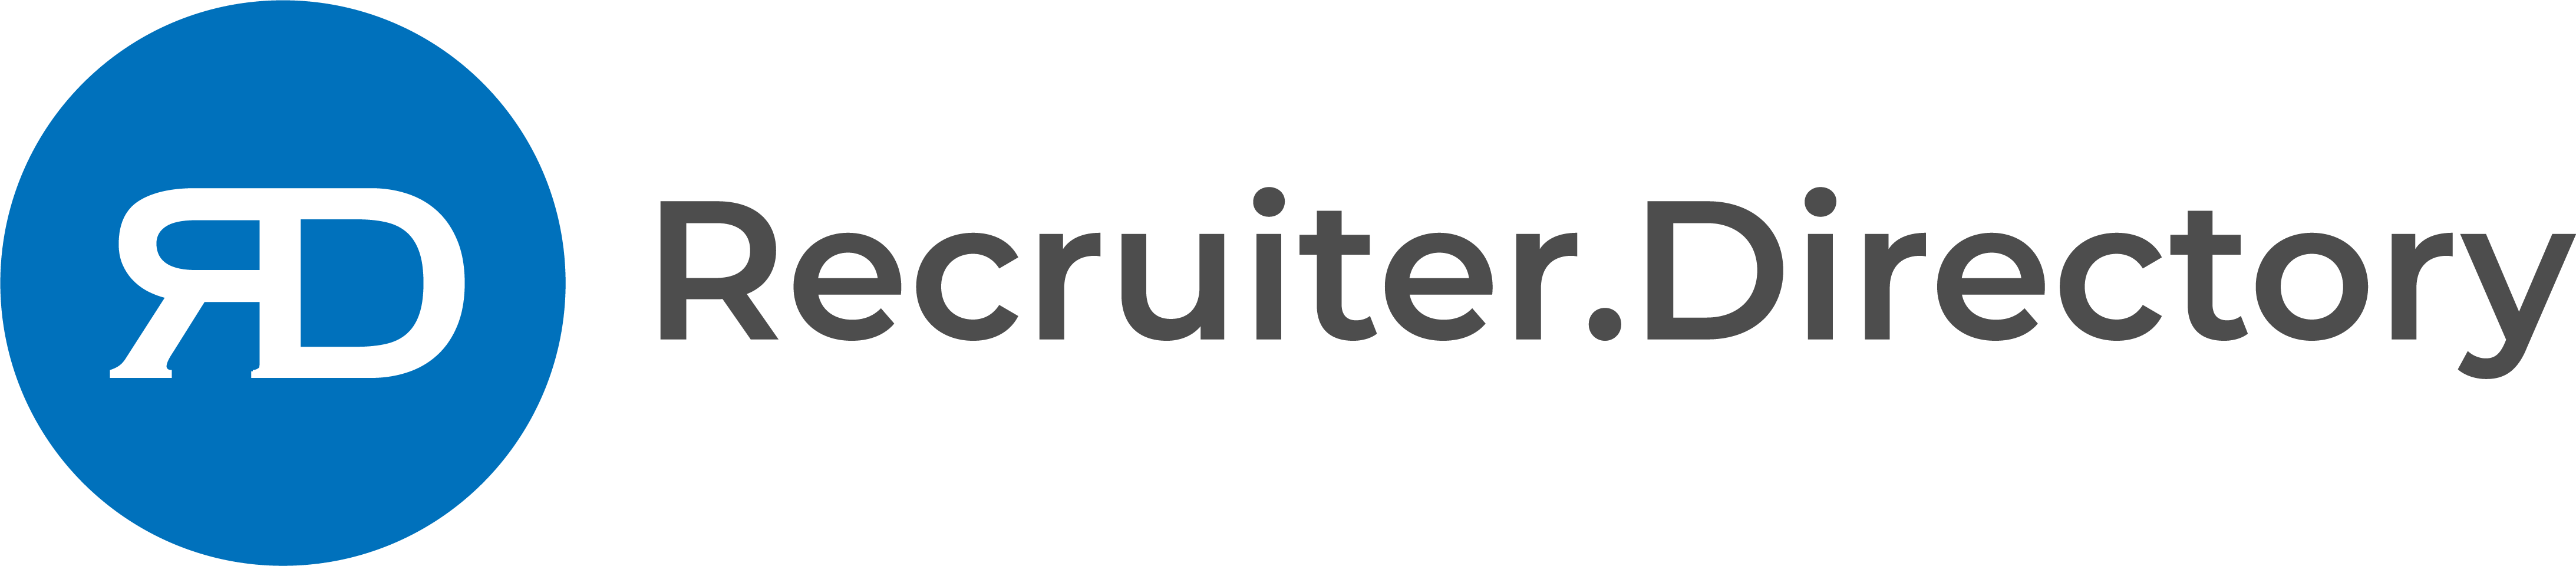 Recruiter Directory